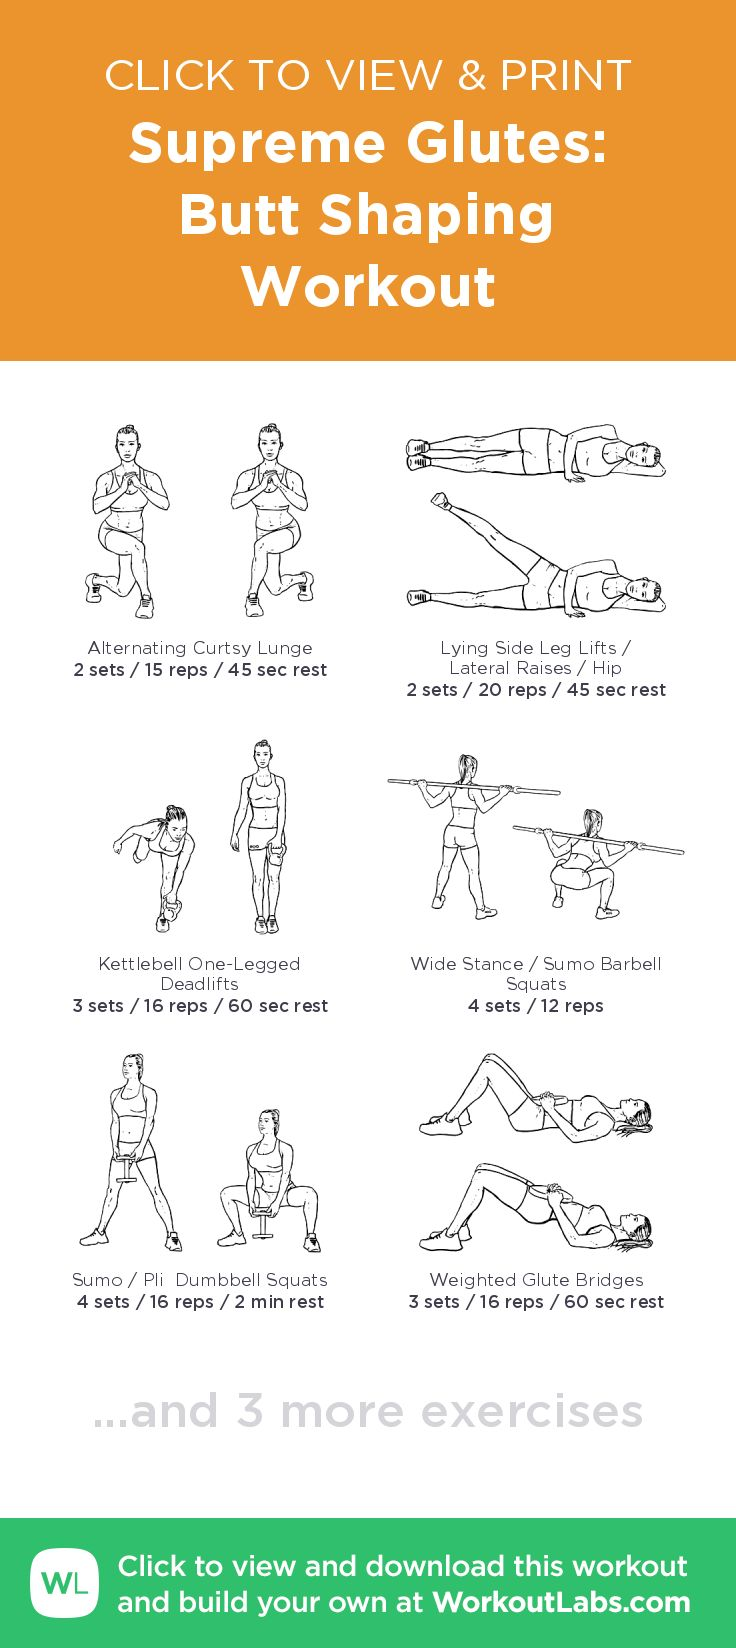 Supreme Glutes: Butt Shaping Workout – click to view and print this illustrated exercise plan created with #WorkoutLabsFit